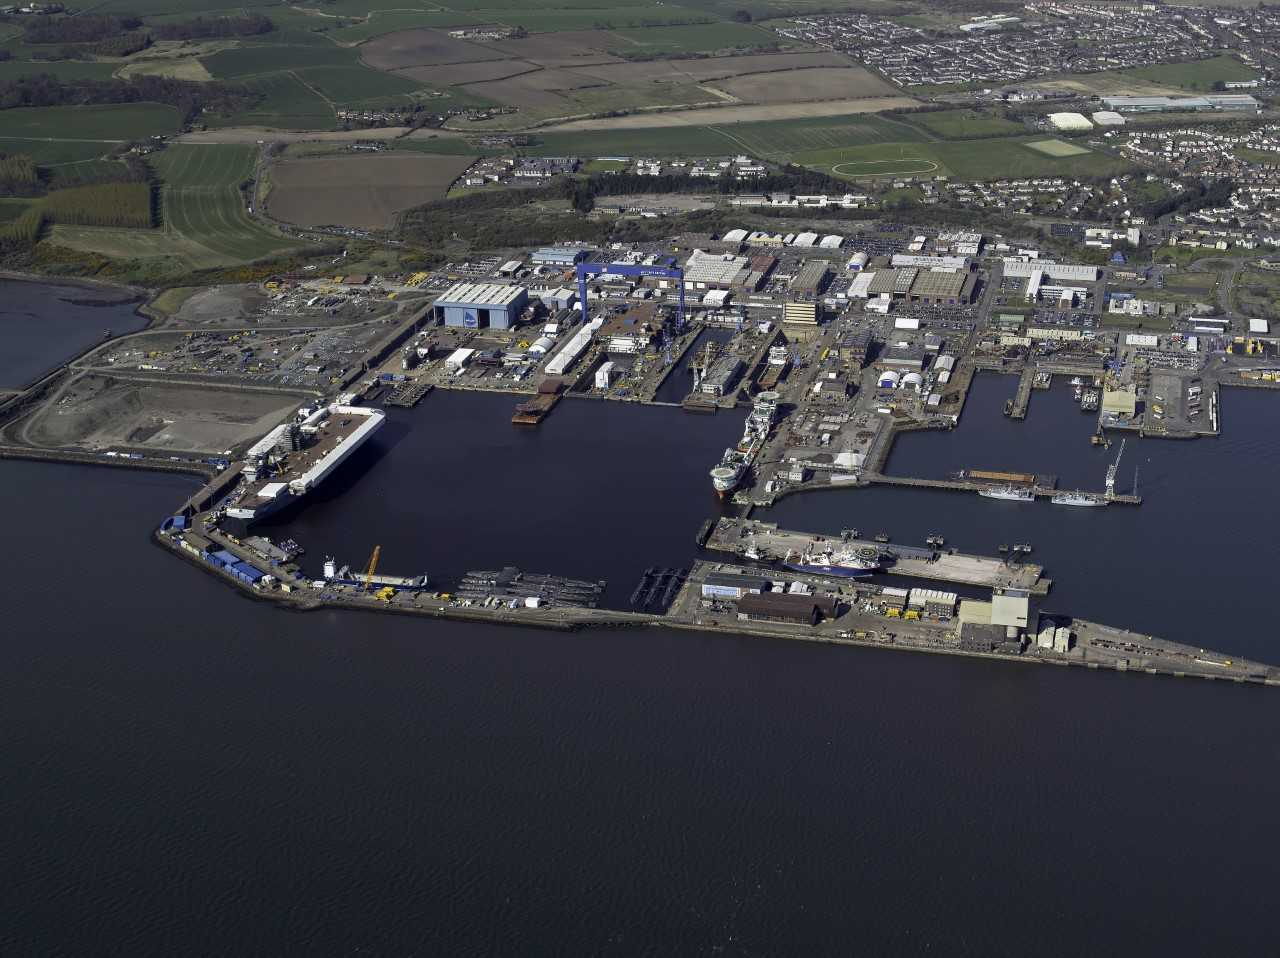 Rosyth Dockyard voted one of the best 200 projects in the world